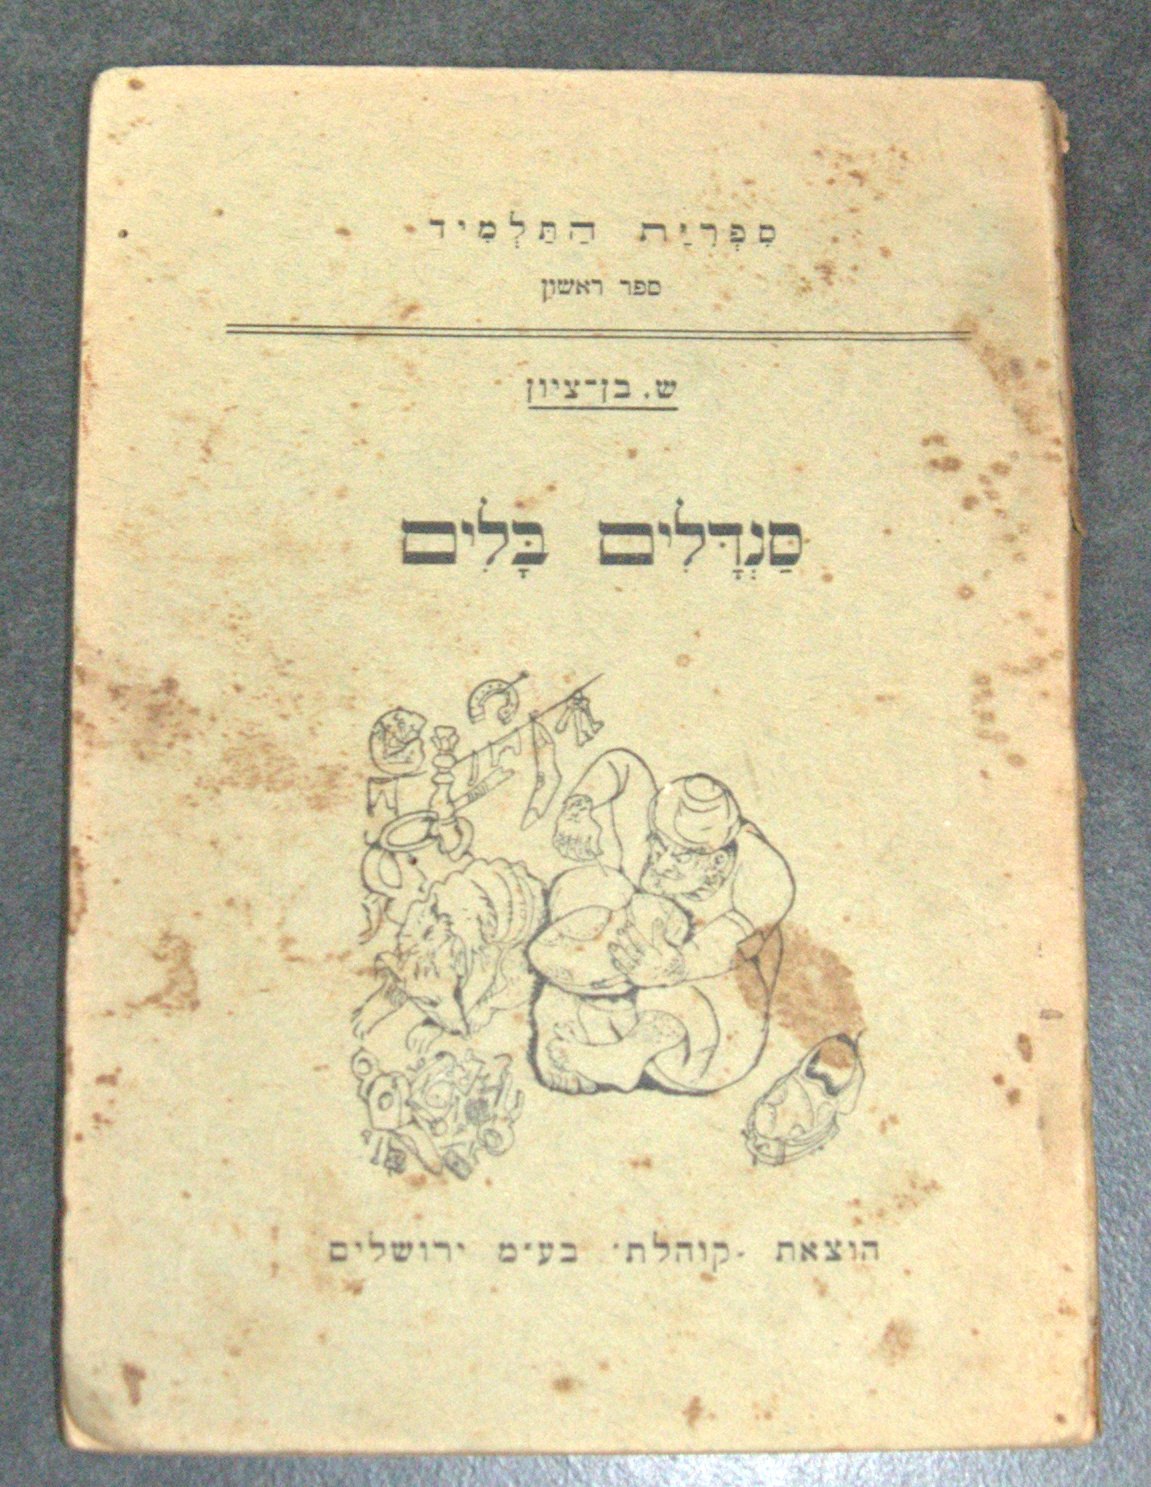 S BEN ZION N GUTMAN Antique Hebrew Book Sandalim Balim Jerusalem Israeliana 1930